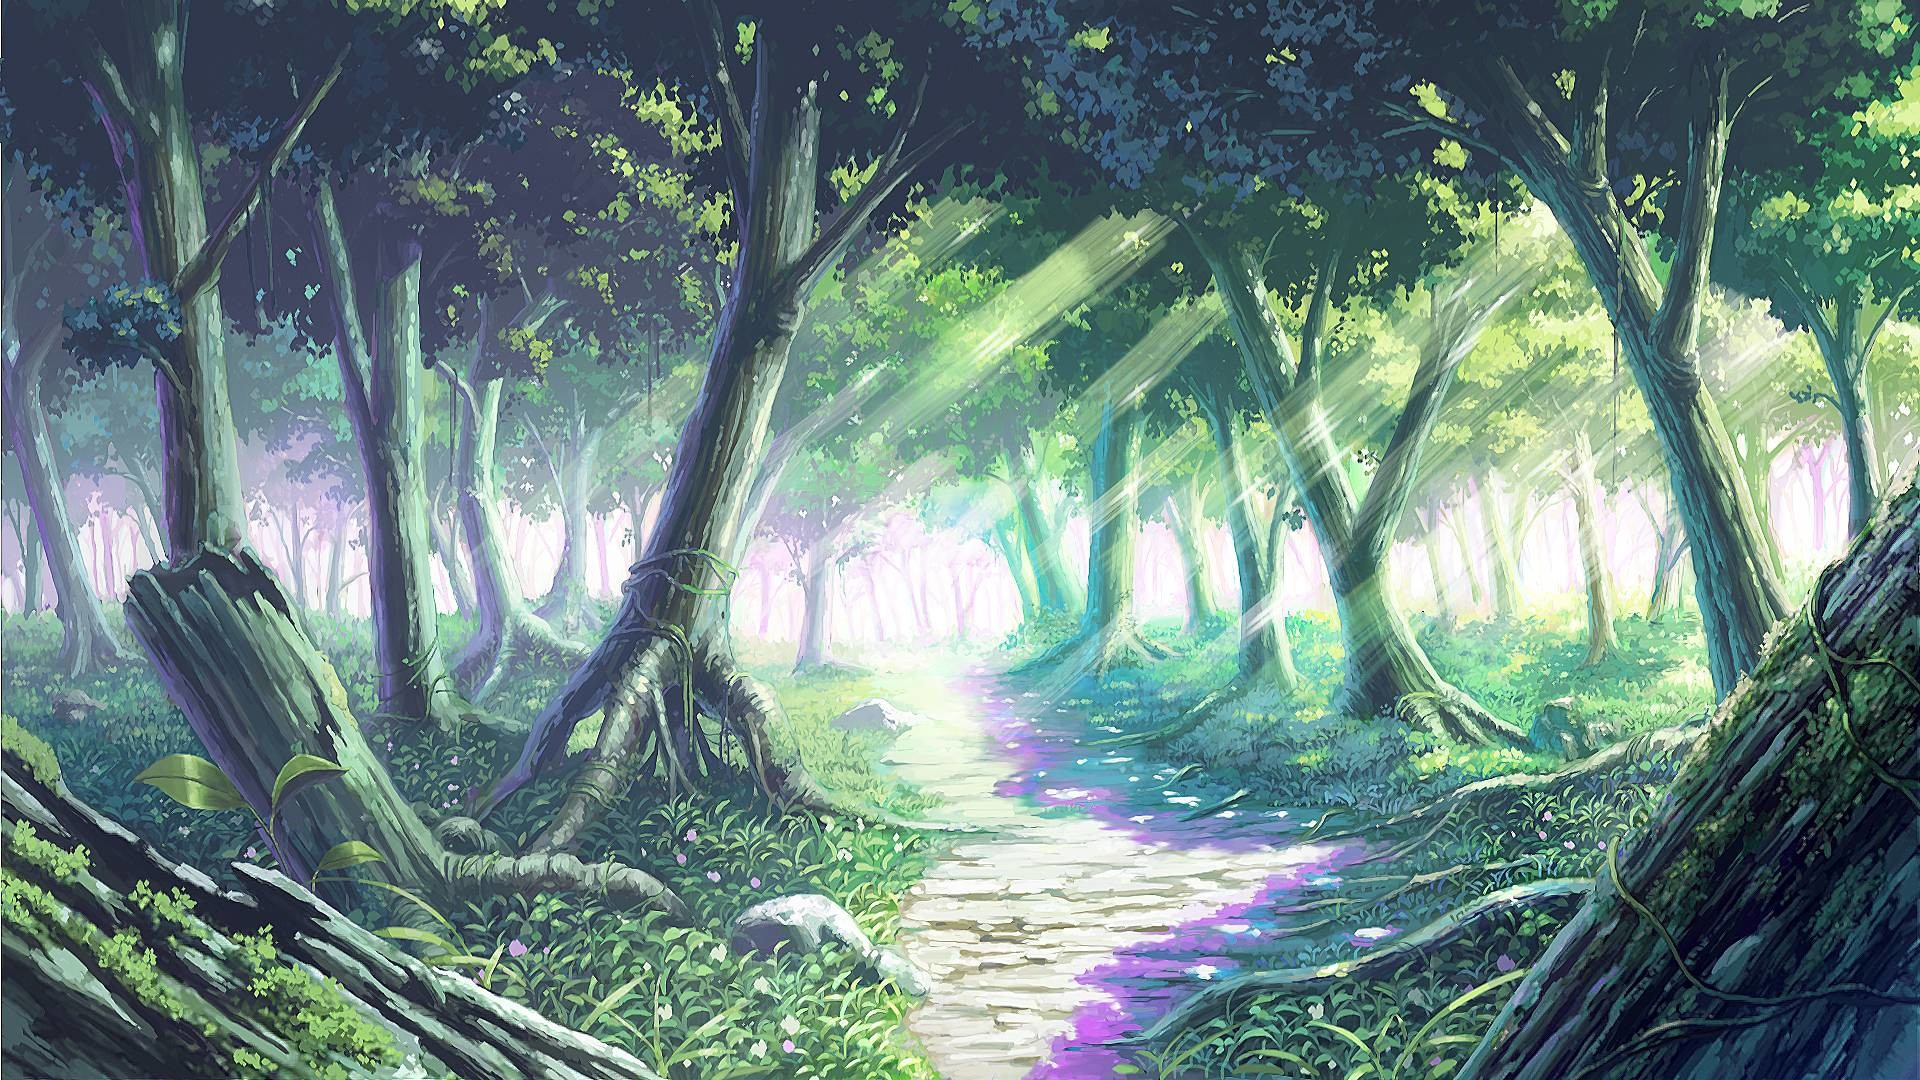 1920x1080 Anime Forest Backgrounds - Wallpaper Cave